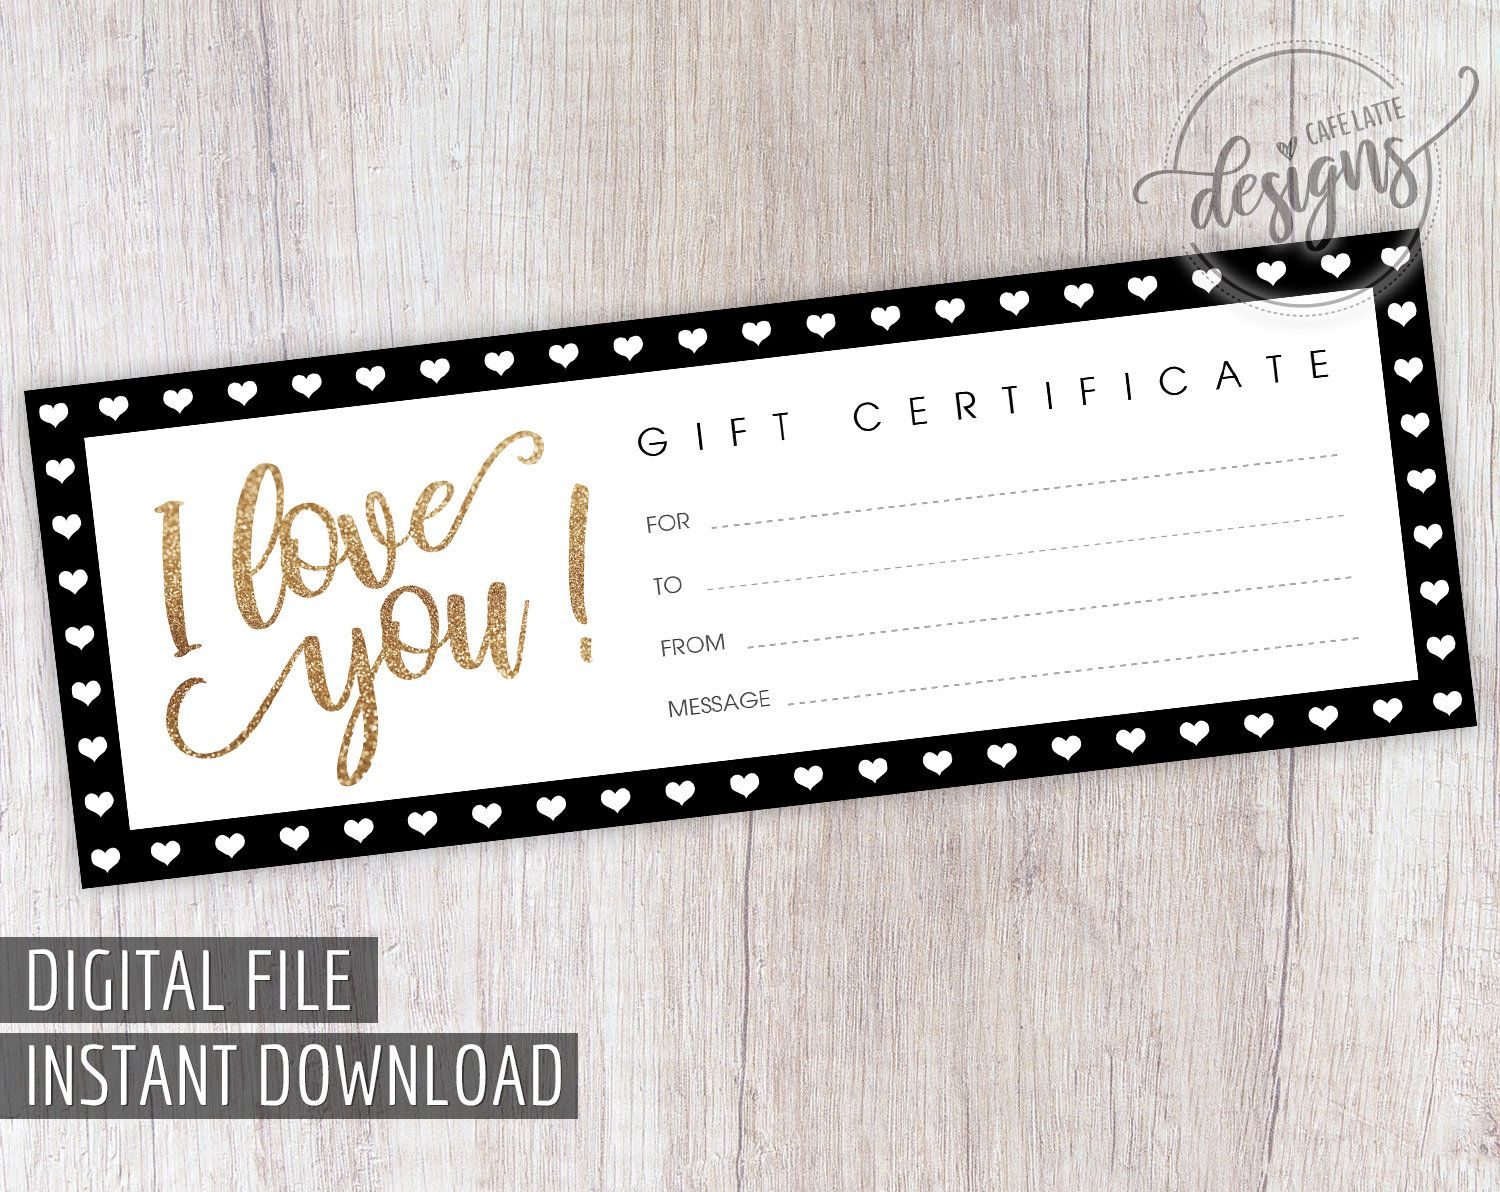 Gift Certificate Printable Valentines Gift Coupon Birthday Wedding Anniversary Gift Idea Instant Download Printable Last Minute Gift Diy Printable Gift Certificate Gift Coupons Naughty Coupon Book